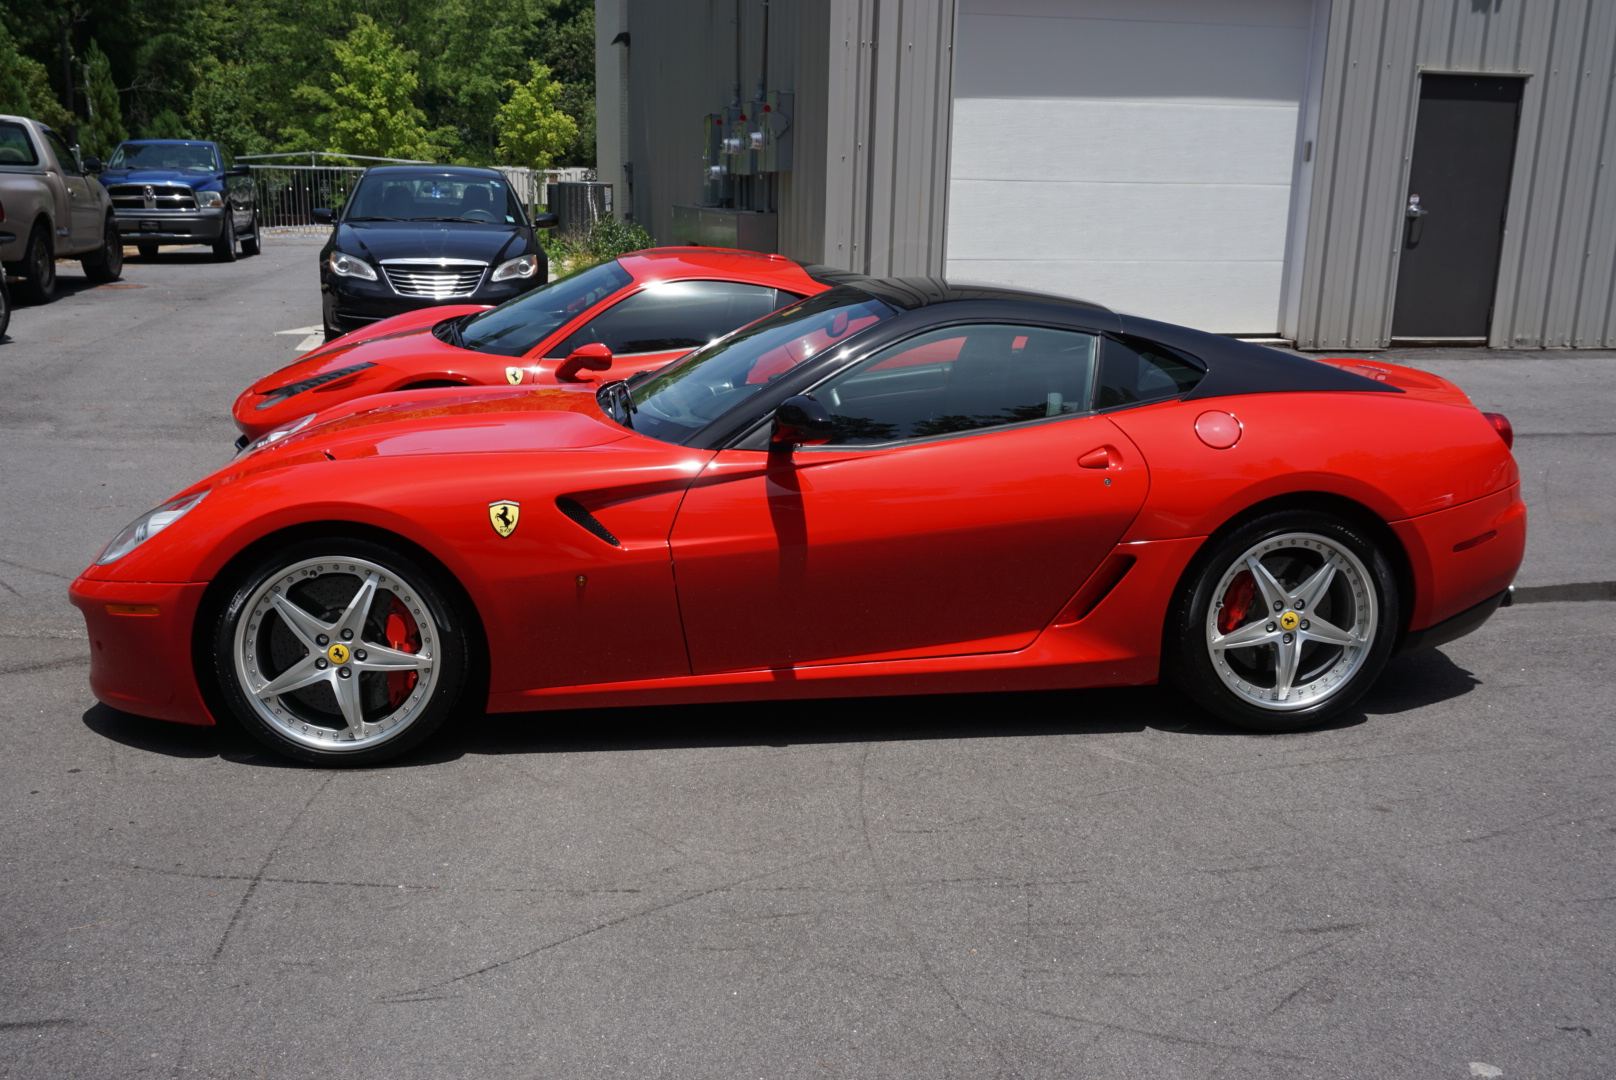 Ceramic Coating of a 2011 Ferrari 599